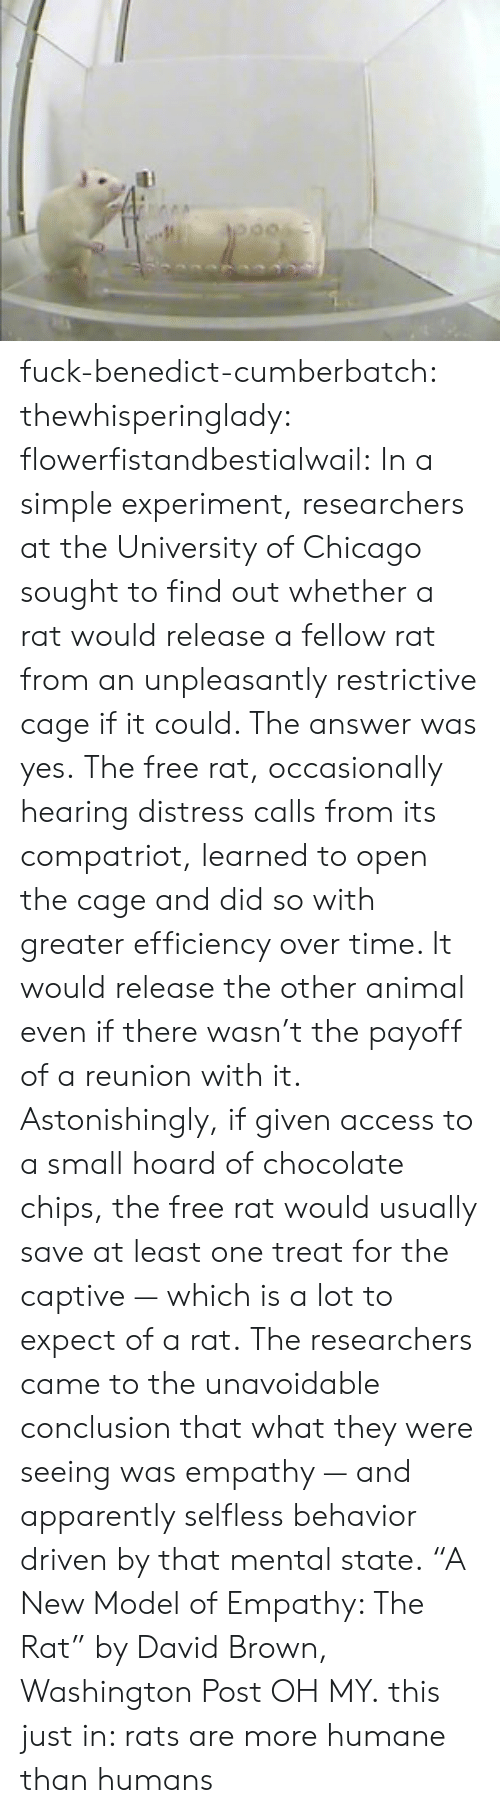 """Apparently, Chicago, and Target: fuck-benedict-cumberbatch:  thewhisperinglady:  flowerfistandbestialwail:   In a simple experiment, researchers at the University of Chicago sought to find out whether a rat would release a fellow rat from an unpleasantly restrictive cage if it could. The answer was yes. The free rat, occasionally hearing distress calls from its compatriot, learned to open the cage and did so with greater efficiency over time. It would release the other animal even if there wasn't the payoff of a reunion with it. Astonishingly, if given access to a small hoard of chocolate chips, the free rat would usually save at least one treat for the captive — which is a lot to expect of a rat. The researchers came to the unavoidable conclusion that what they were seeing was empathy — and apparently selfless behavior driven by that mental state. """"A New Model of Empathy: The Rat"""" by David Brown, Washington Post   OH MY.  this just in: rats are more humane than humans"""